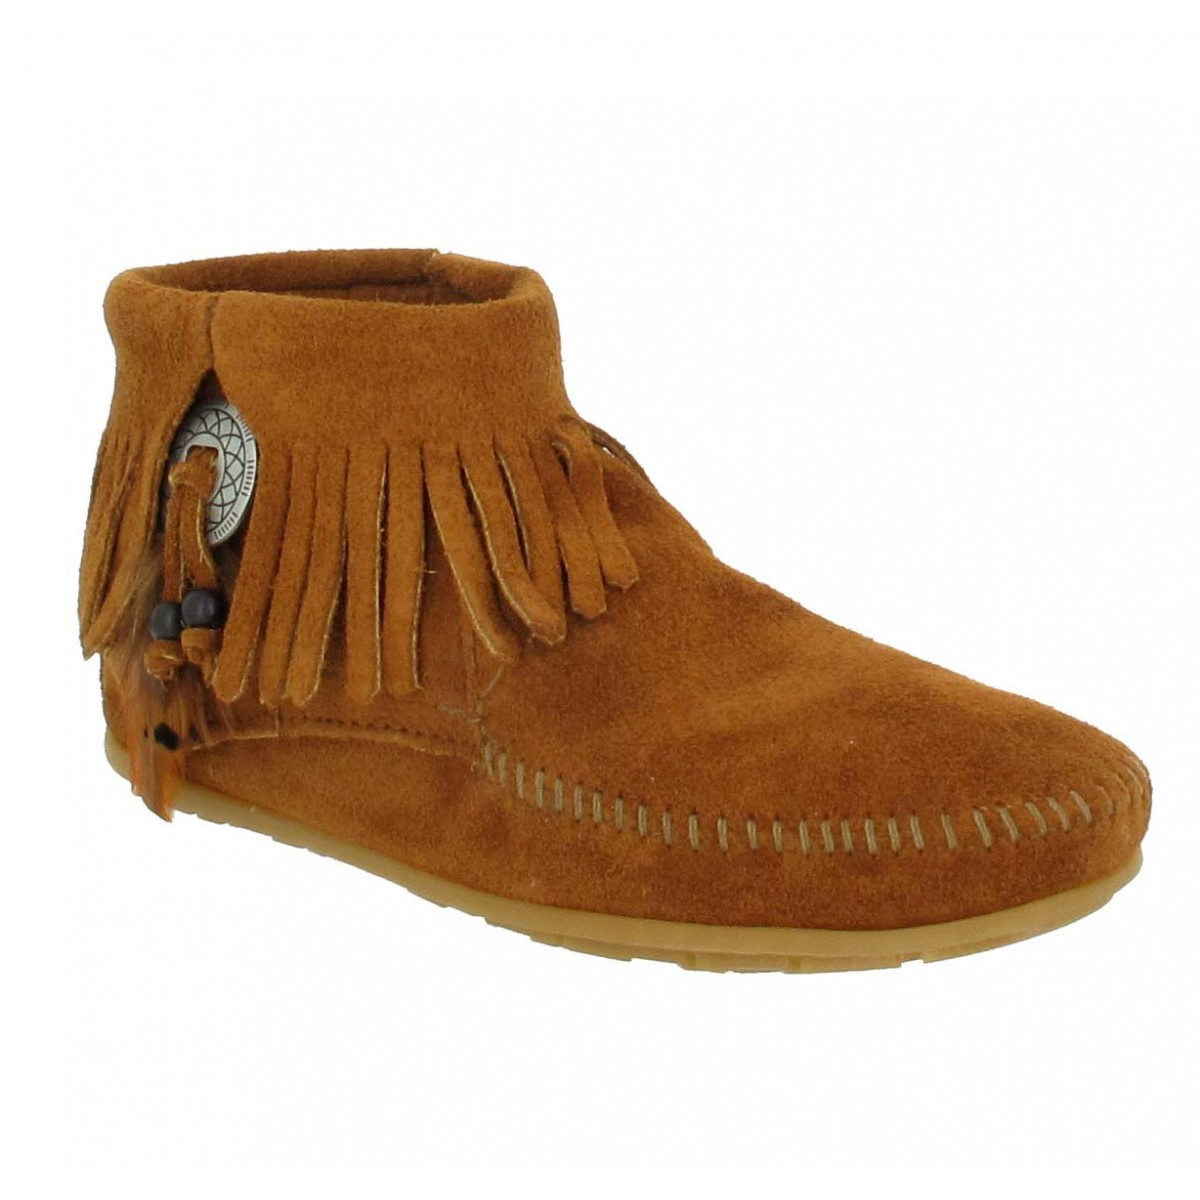 Bottines MINNETONKA Concho velours Femme Marron